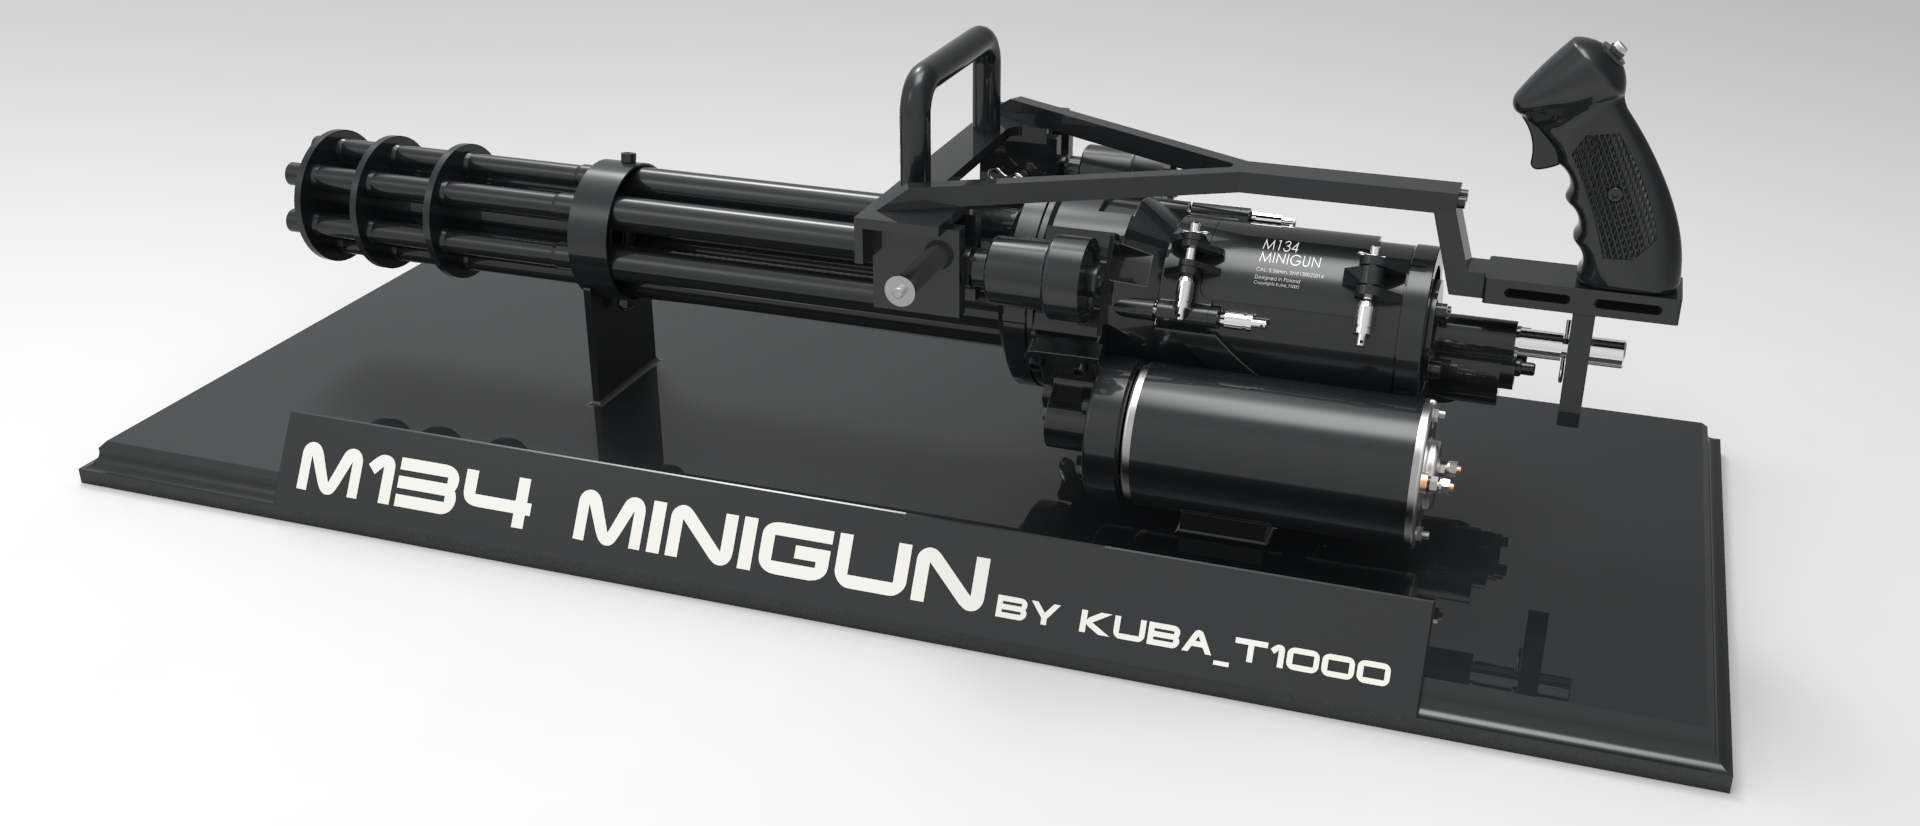 3D Model M134 HD Minigun picture